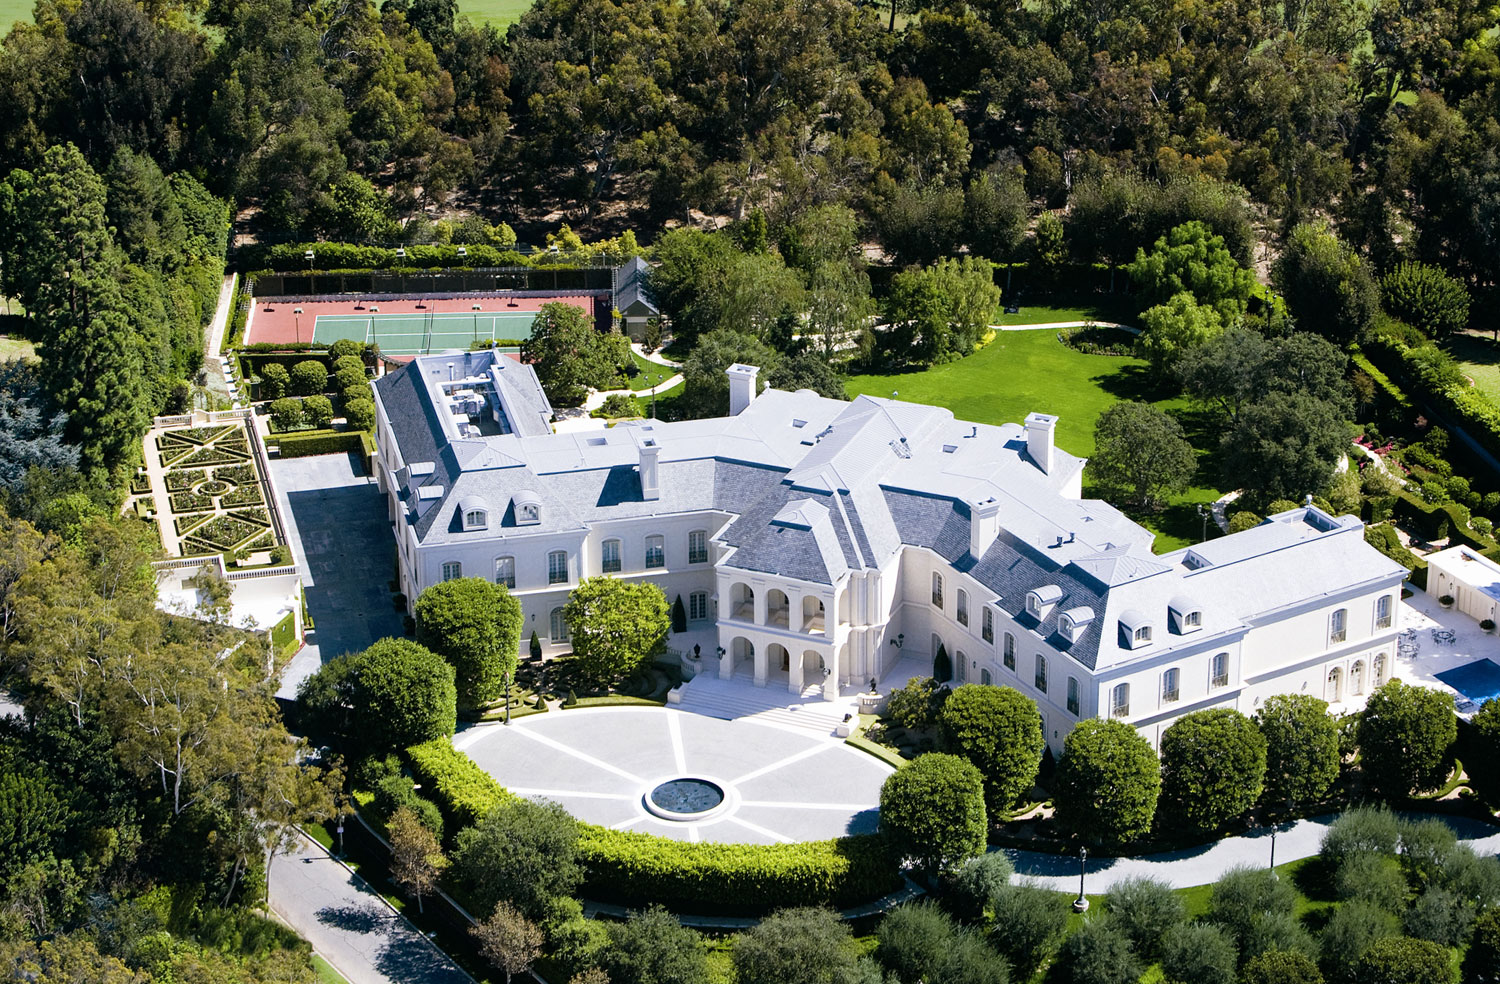 One of the world's most luxurious homes, The Manor was formerly owned by entertainment royalty Candy and Aaron Spelling; in 2011 the magnificent French château-style residence was updated with no expense spared.